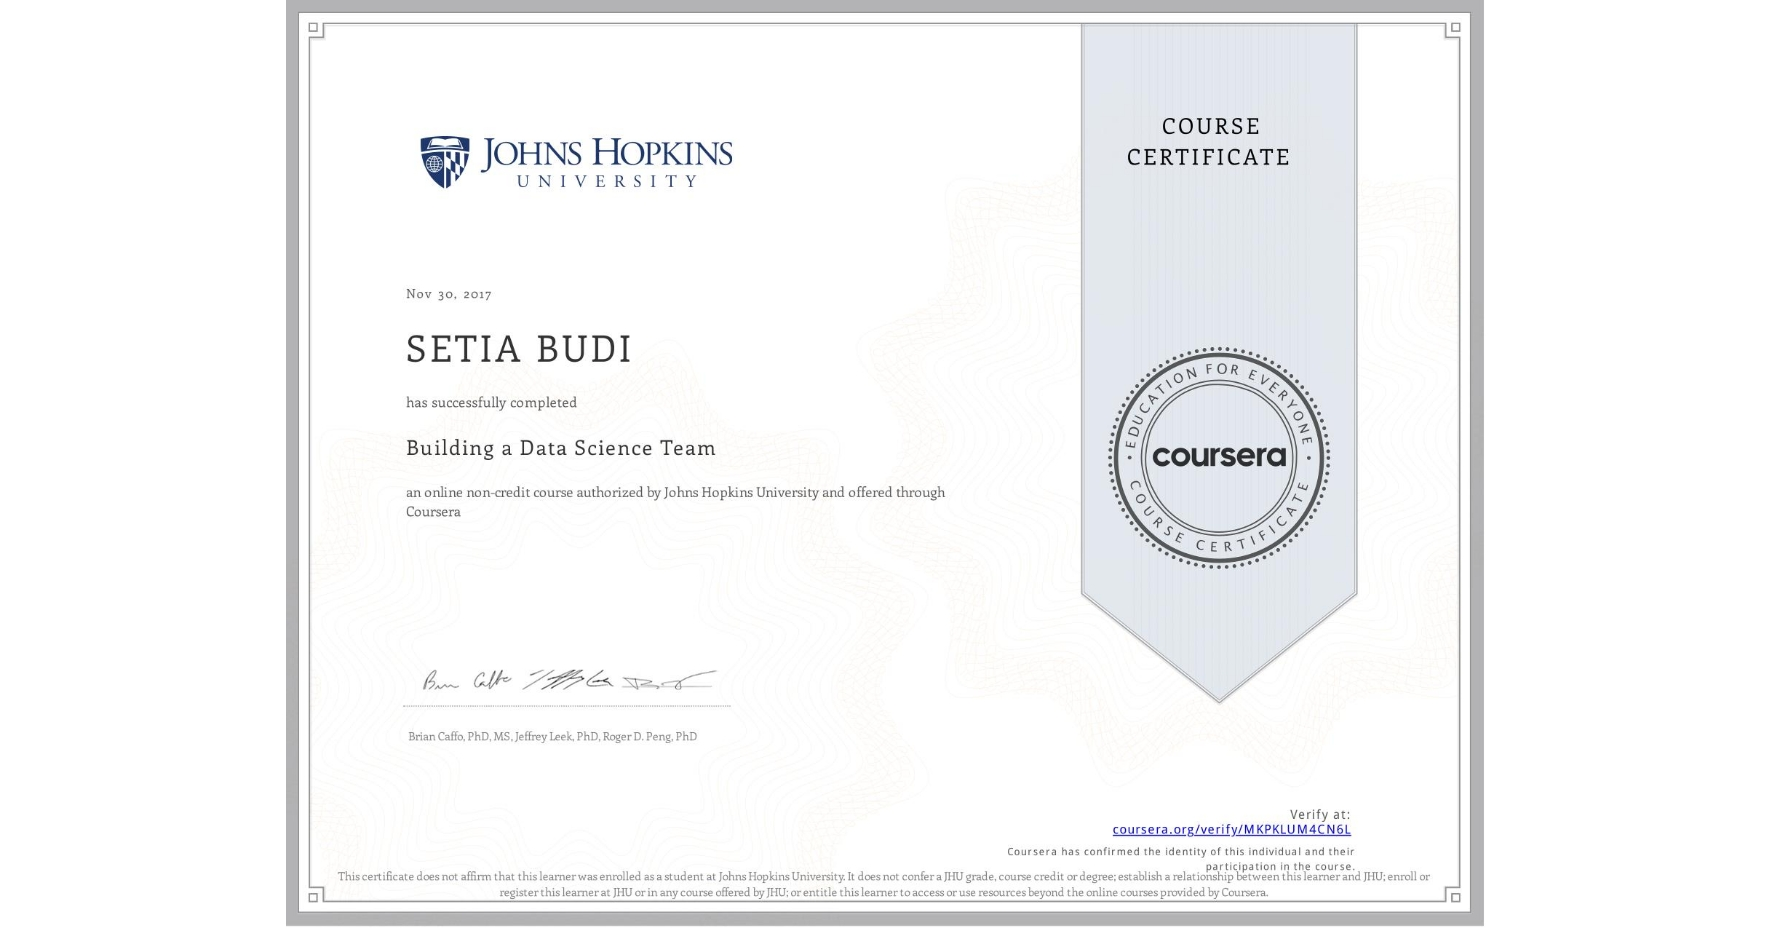 View certificate for Setia Budi, Building a Data Science Team, an online non-credit course authorized by Johns Hopkins University and offered through Coursera